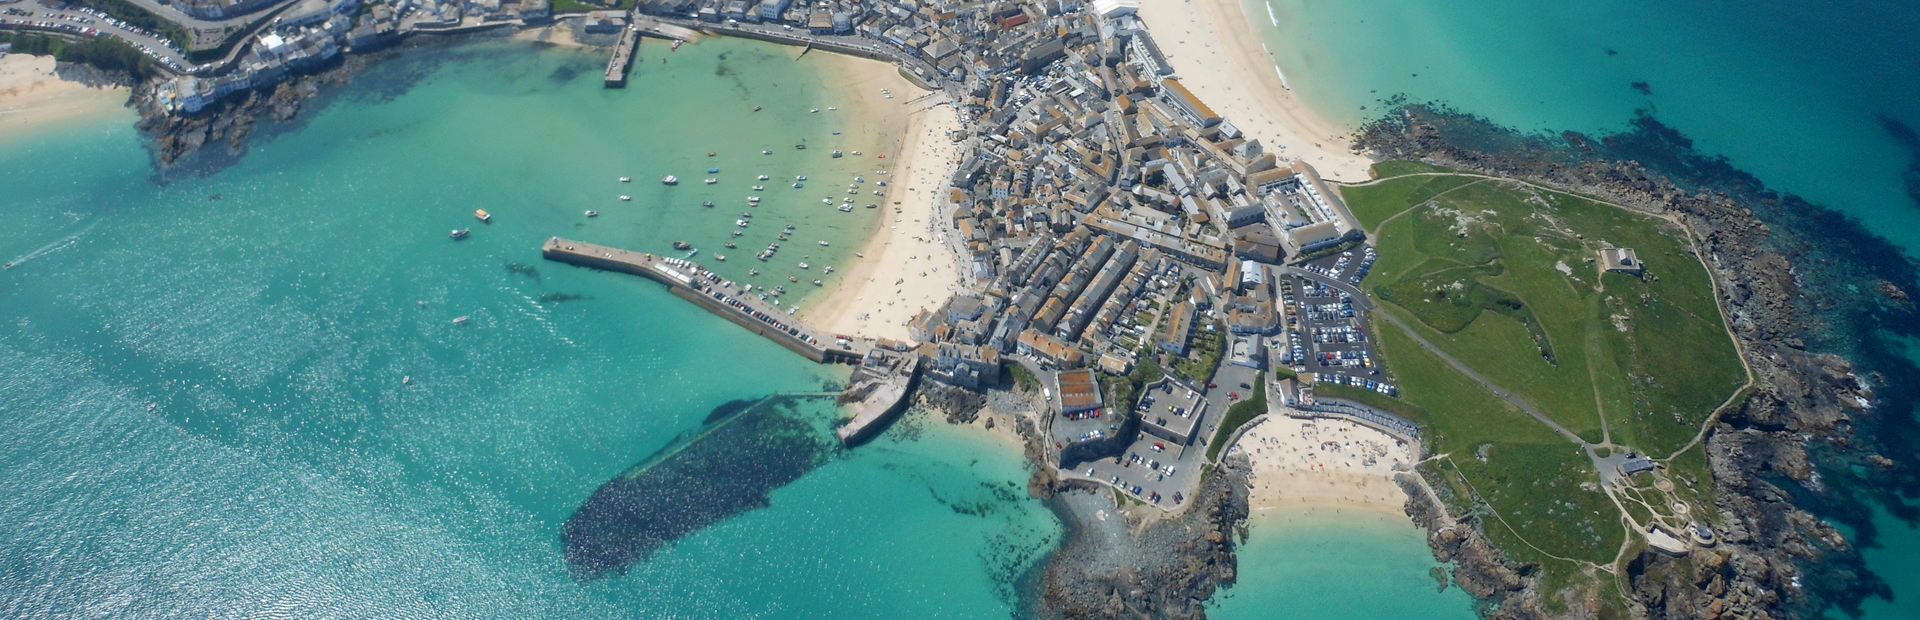 St Ives Bay and Harbour from the air